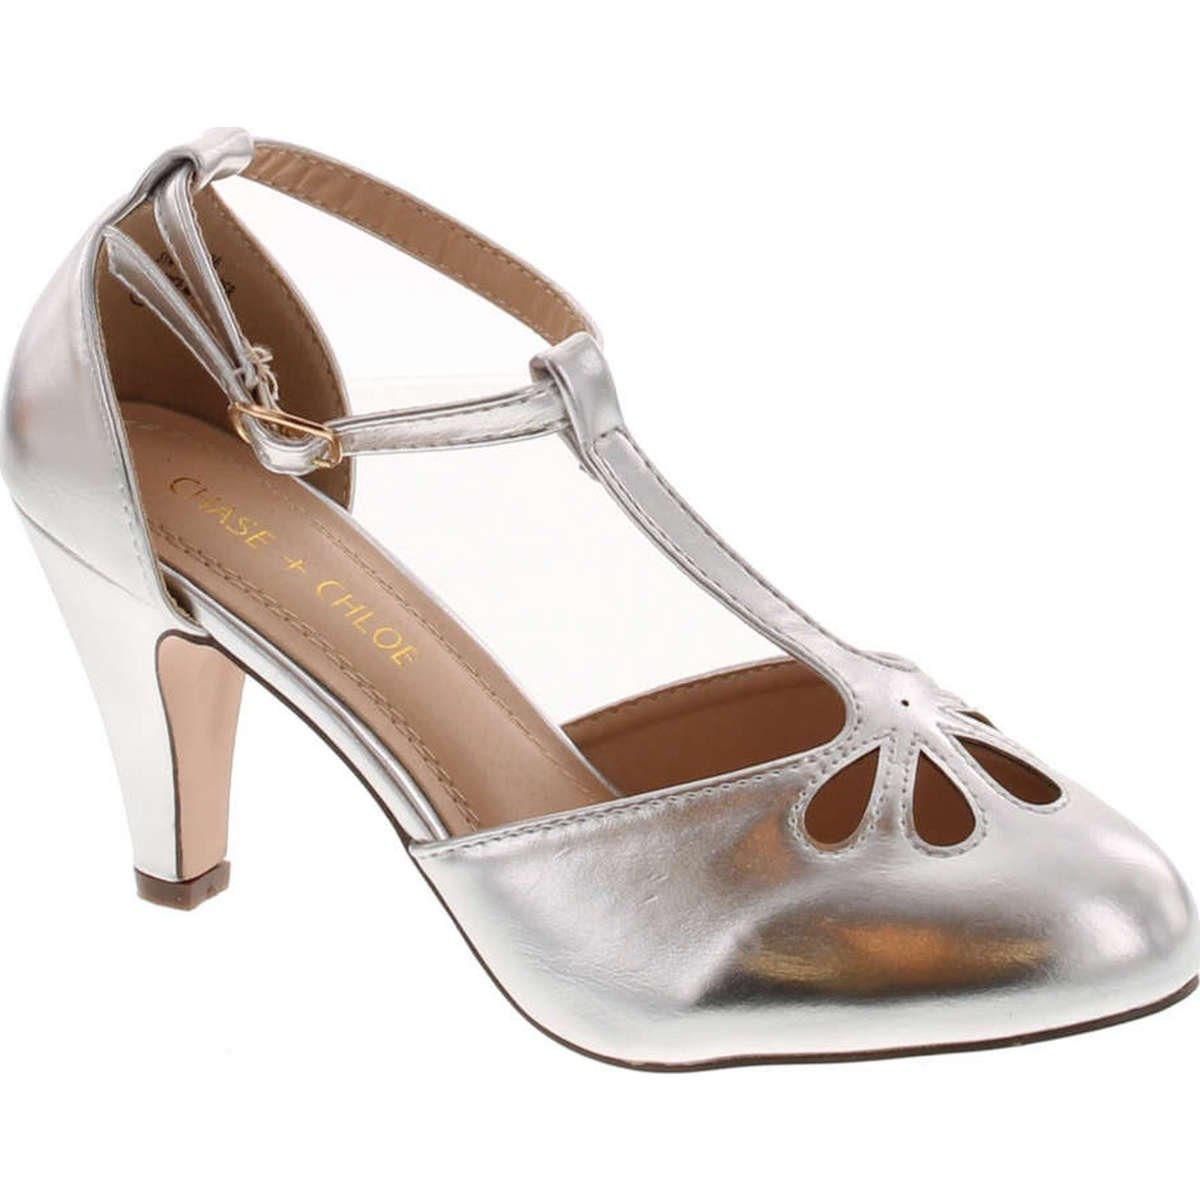 Light Silver Chase & Chloe New Kimmy-36 Women's Teardrop Cut Out T-Strap Mid Heel Dress Pumps